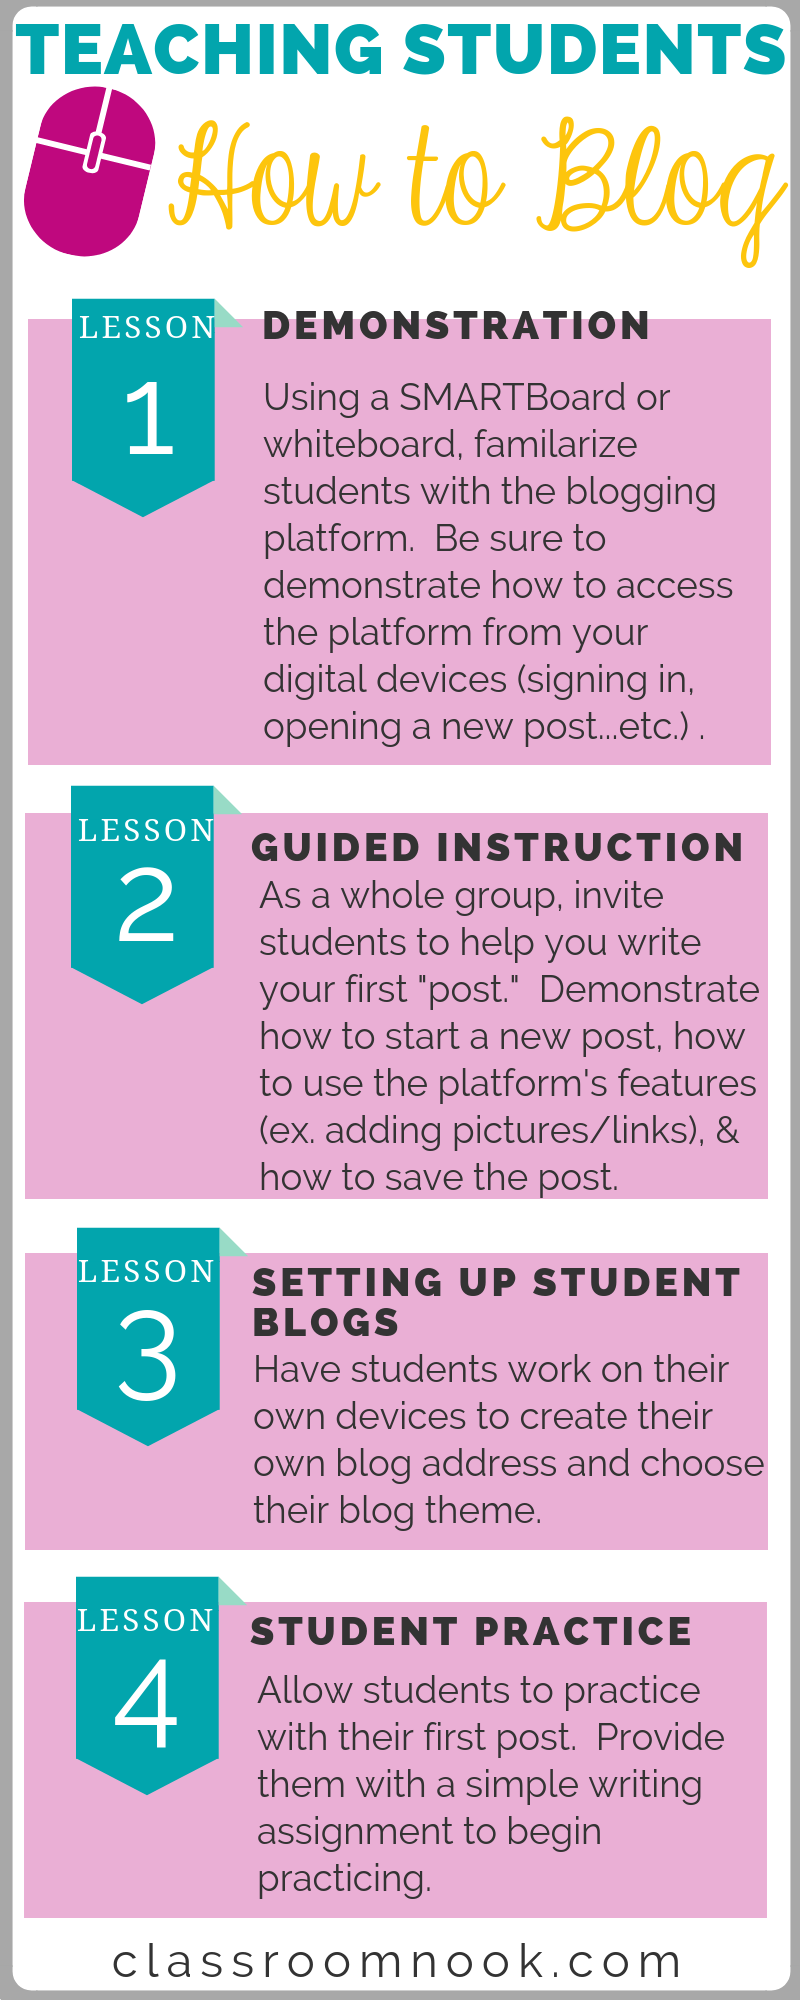 Student_blogging_infographic.png